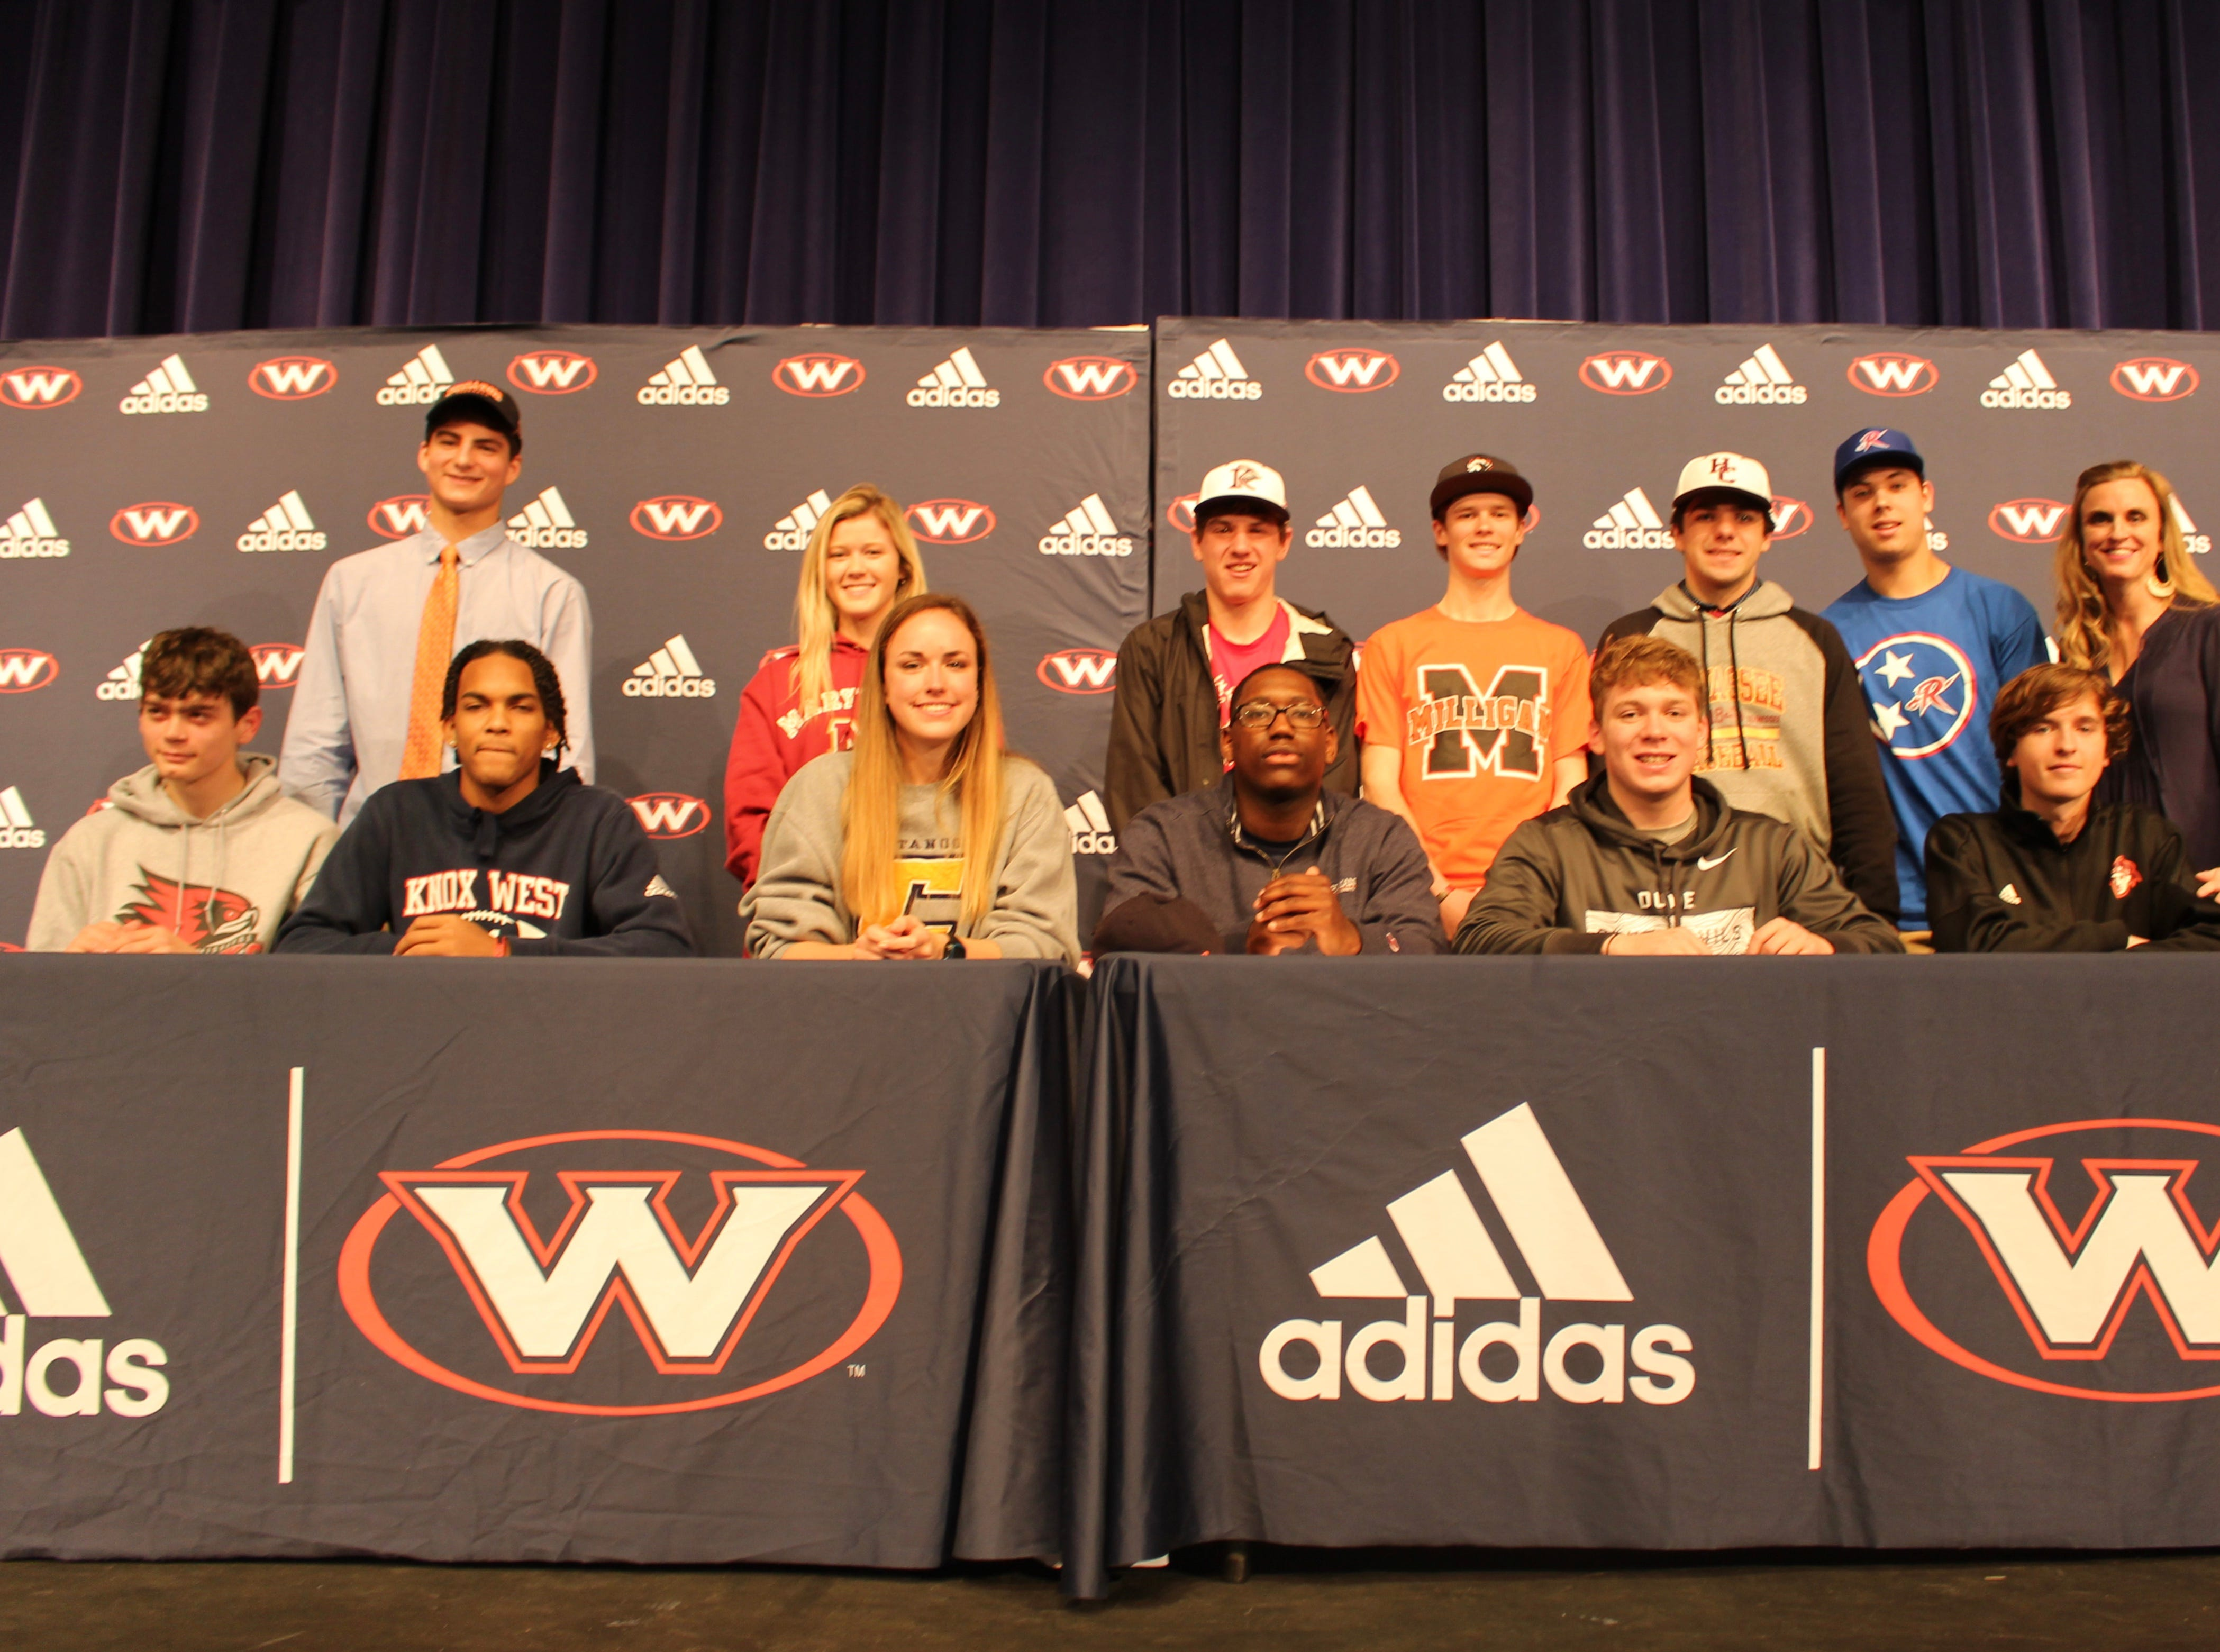 A dozen athletes from West High School signed with a college on National Signing Day 2019. Pictured are: (front) Shea DeGraaf,  track at Southeast Missouri State; Cedarius Bost, football for Georgetown College;  Anne Katherine Anderson, soccer for the University of Tennessee at Chattanooga; Demarcus Nelson,  football for Carson-Newman University; Coleman Kredich,  swimming at Duke University; Carter McAdoo, soccer at Maryville College; (back) Will Eggleston, football at Wheaton College; Bailey Ensley, softball at Maryville College; Jake Wilkinson, baseball with King College; Hunter Connell, cycling for Milligan College; Joey Miller, baseball for Hiwassee College; Brandon Langenberg, baseball for Roane State Community College; and principal Ashley Jessie.